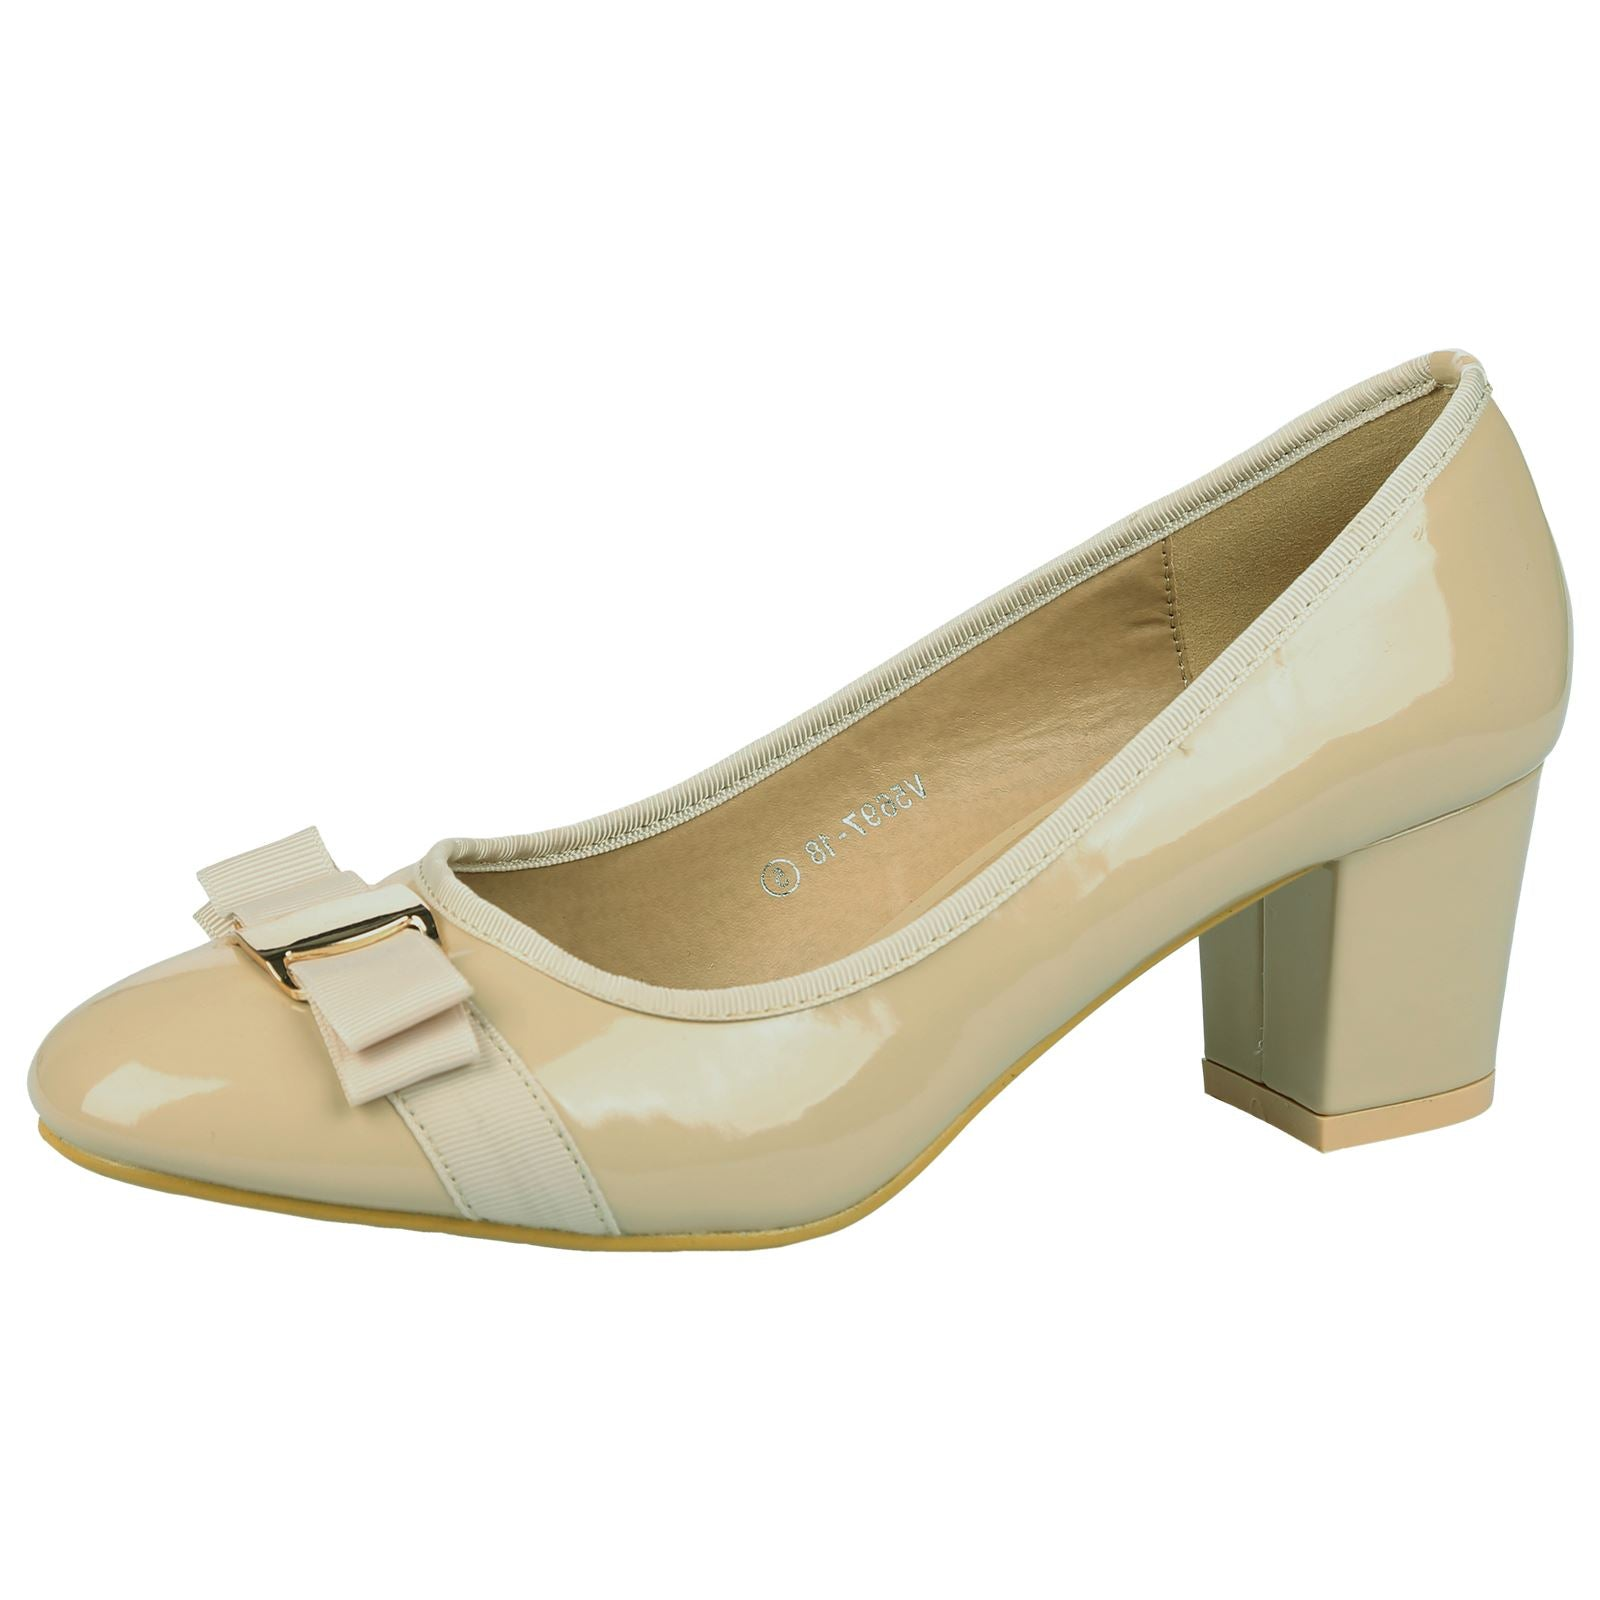 Cherie Bow Detail Low Heel Court Shoes in Beige Nude Patent